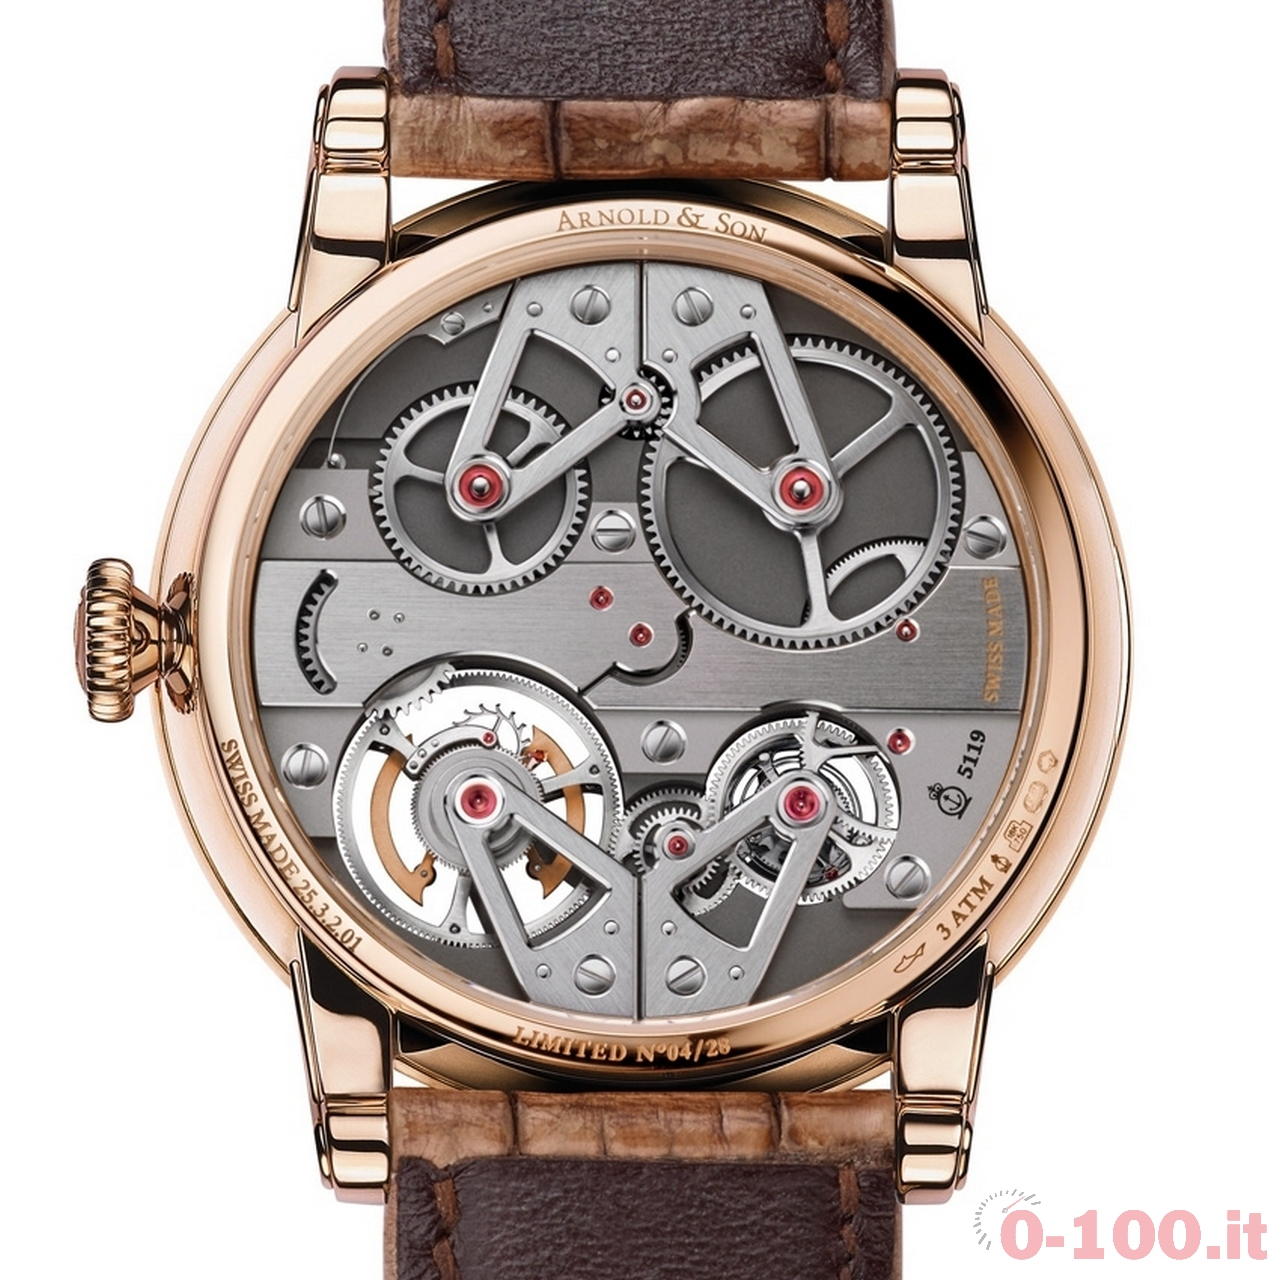 anteprima-baselworld-2016-arnold-son-constant-force-tourbillon-price_0-1003